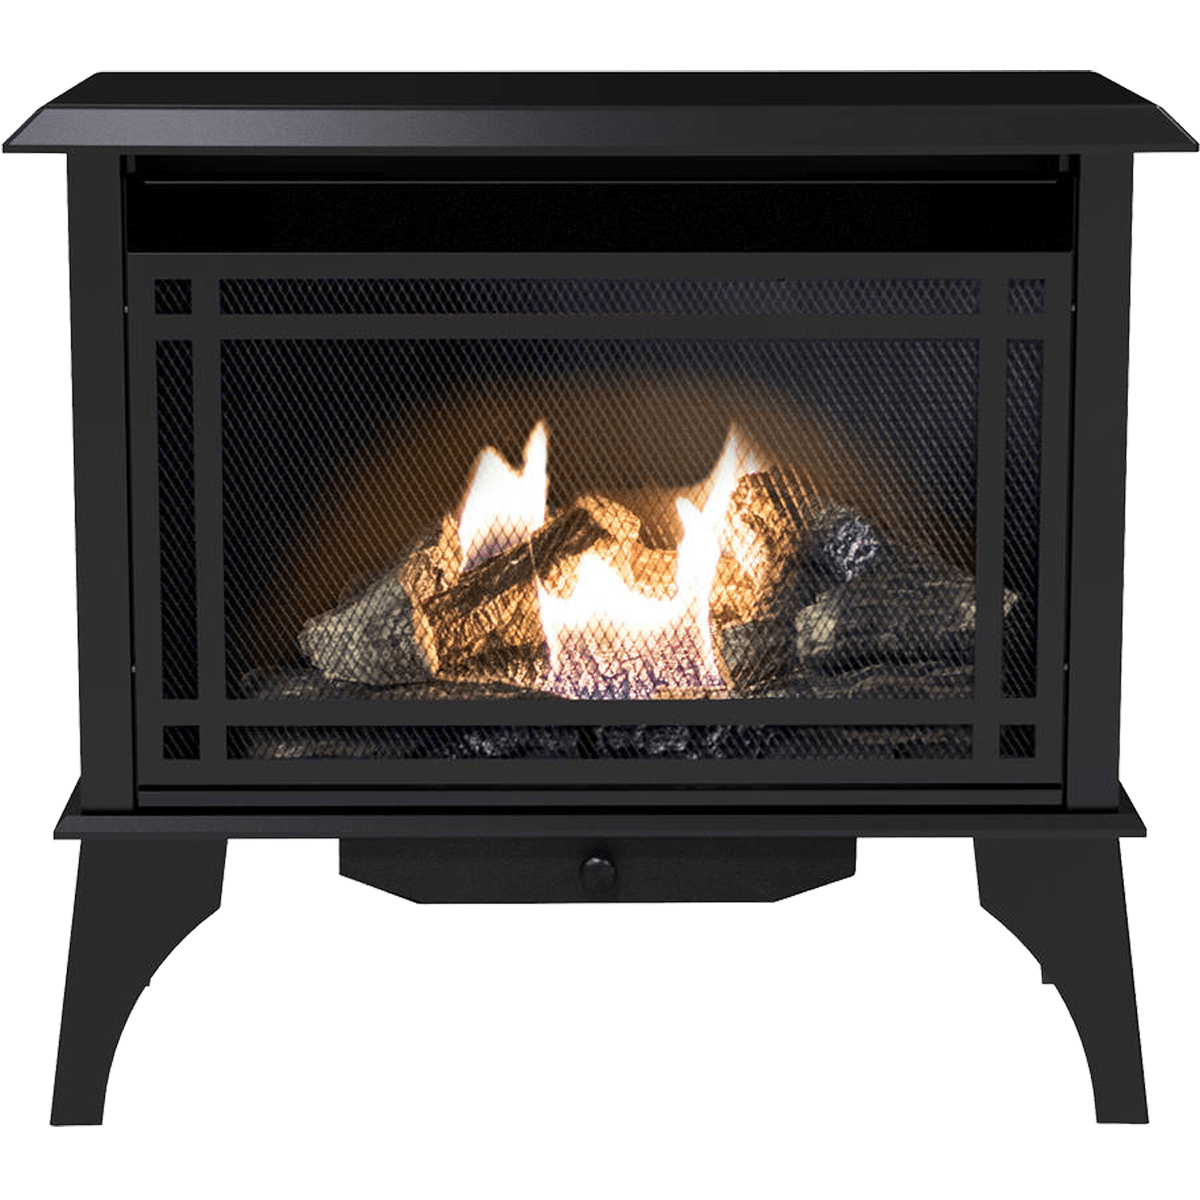 pleasant hearth gas fireplace remote manual best fireplace 2017